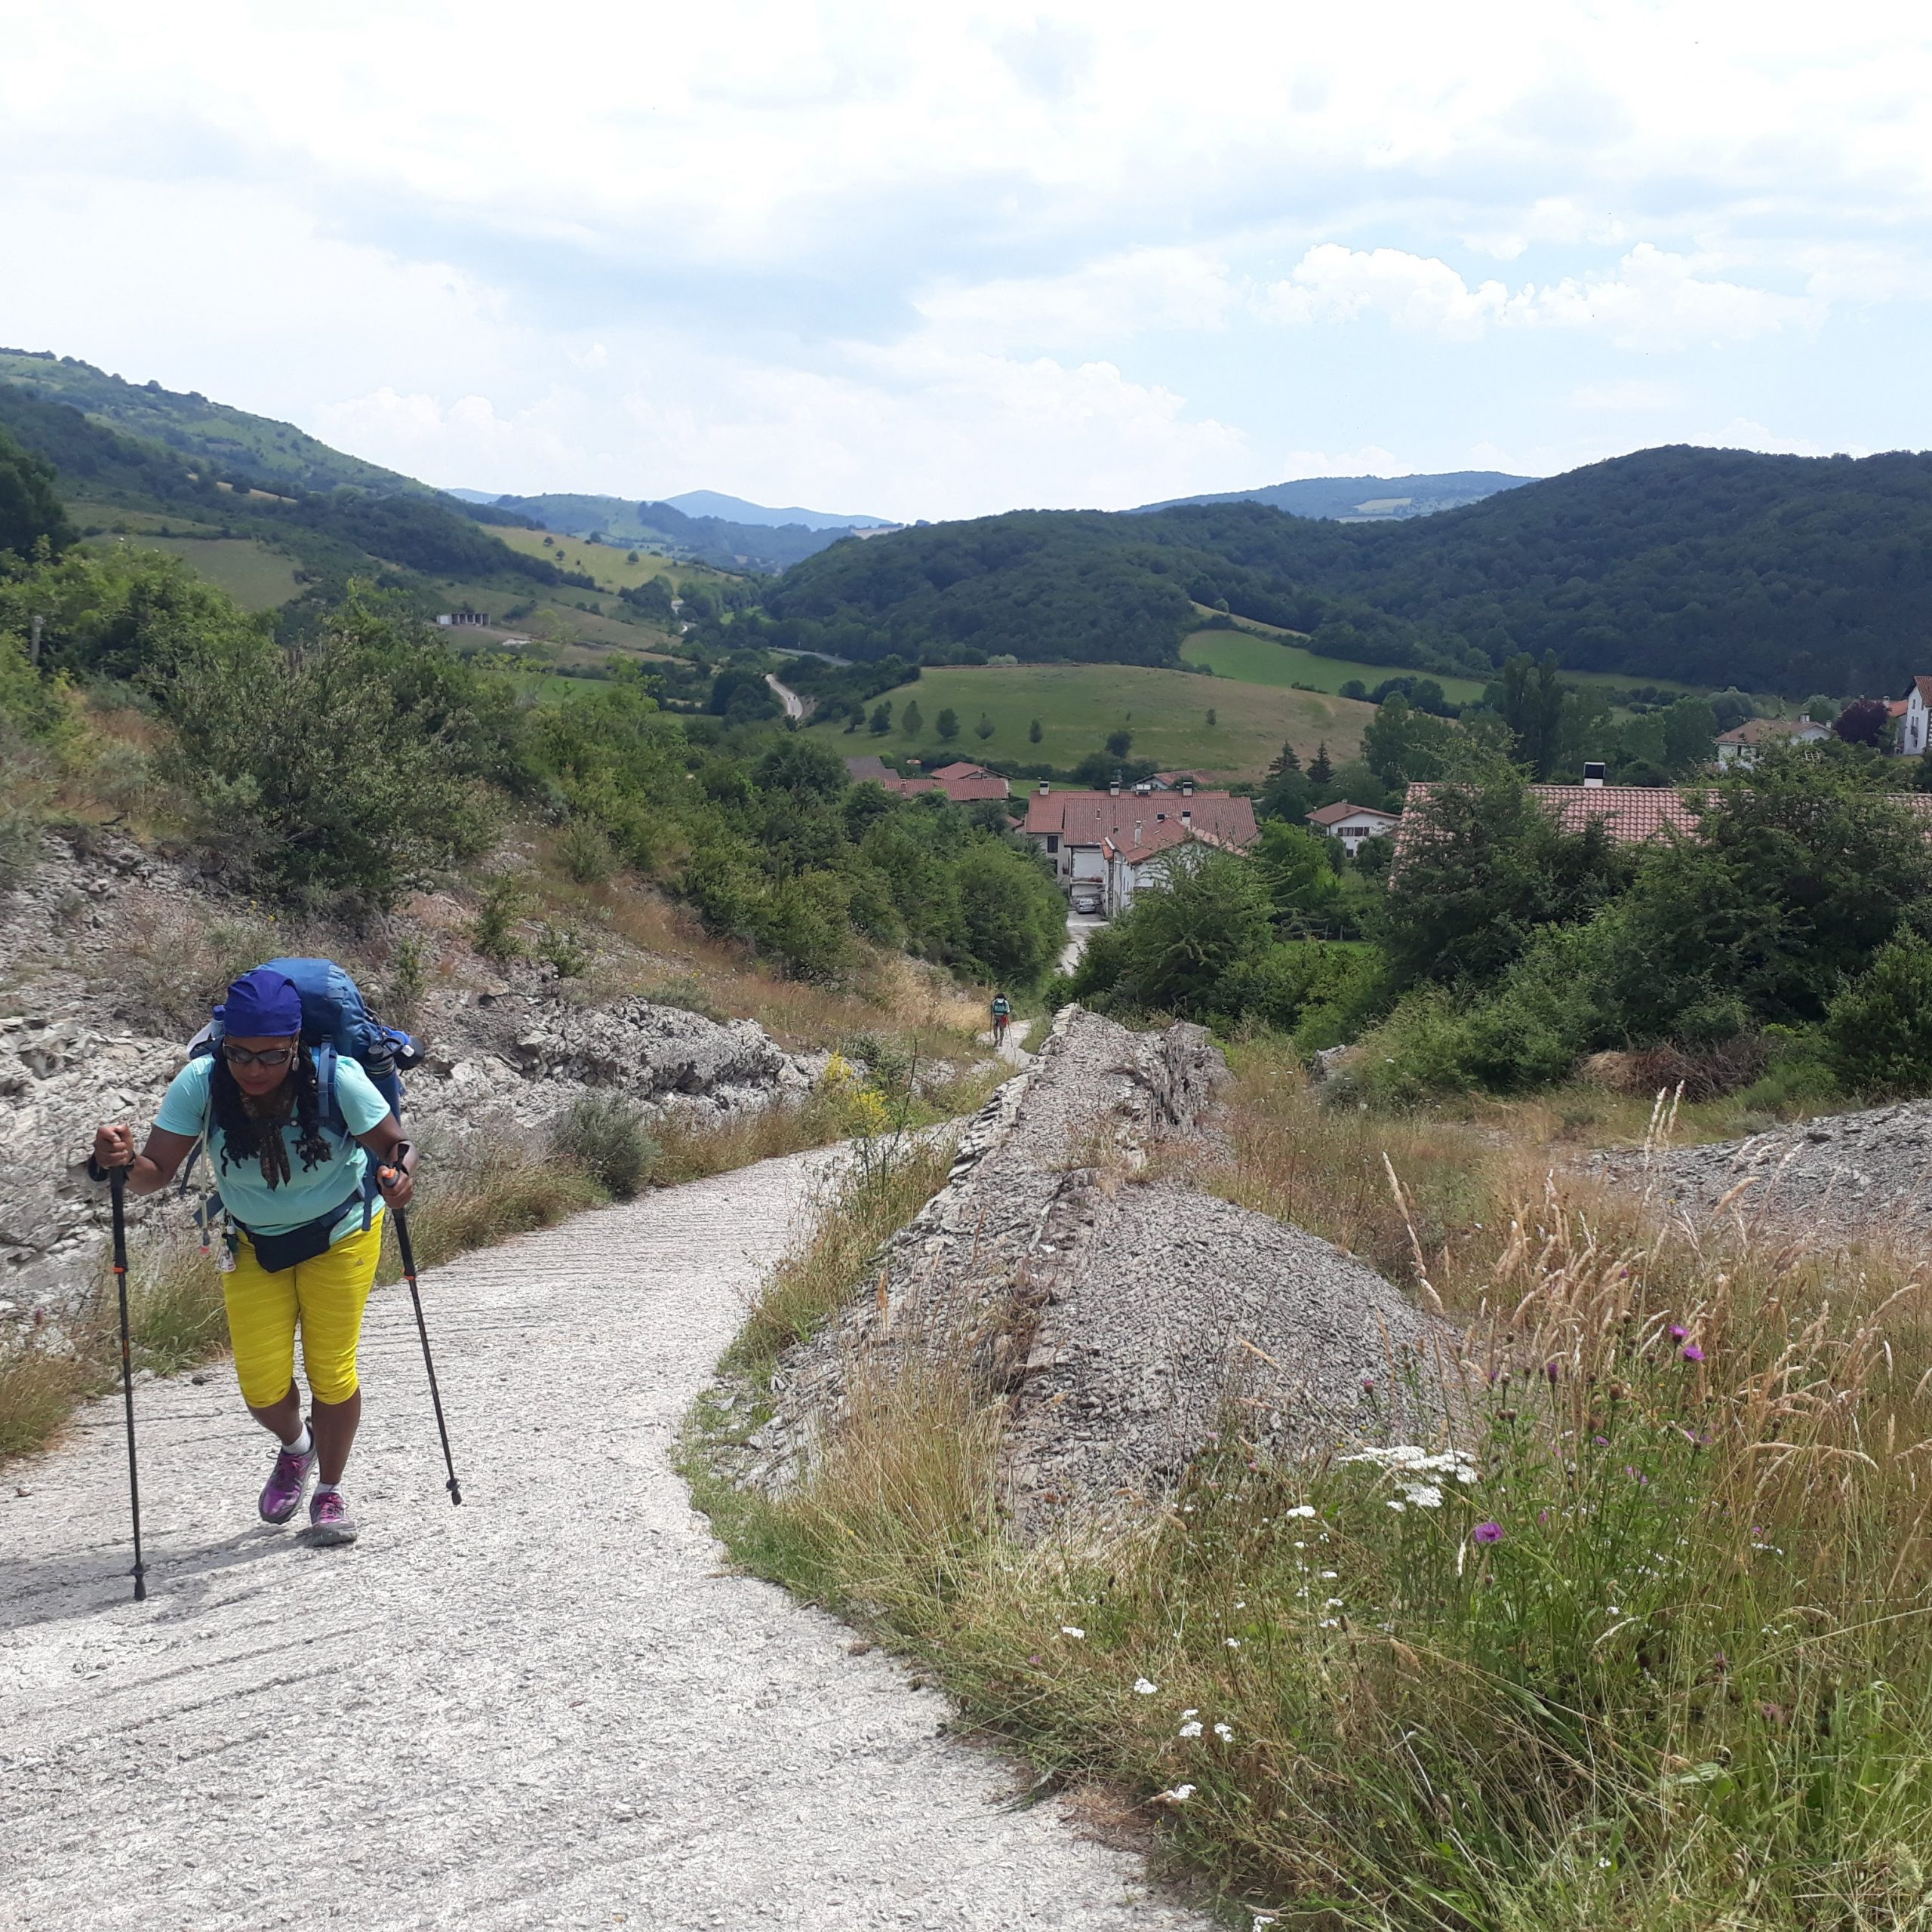 Day 4 Roncesvalles to Zubiri